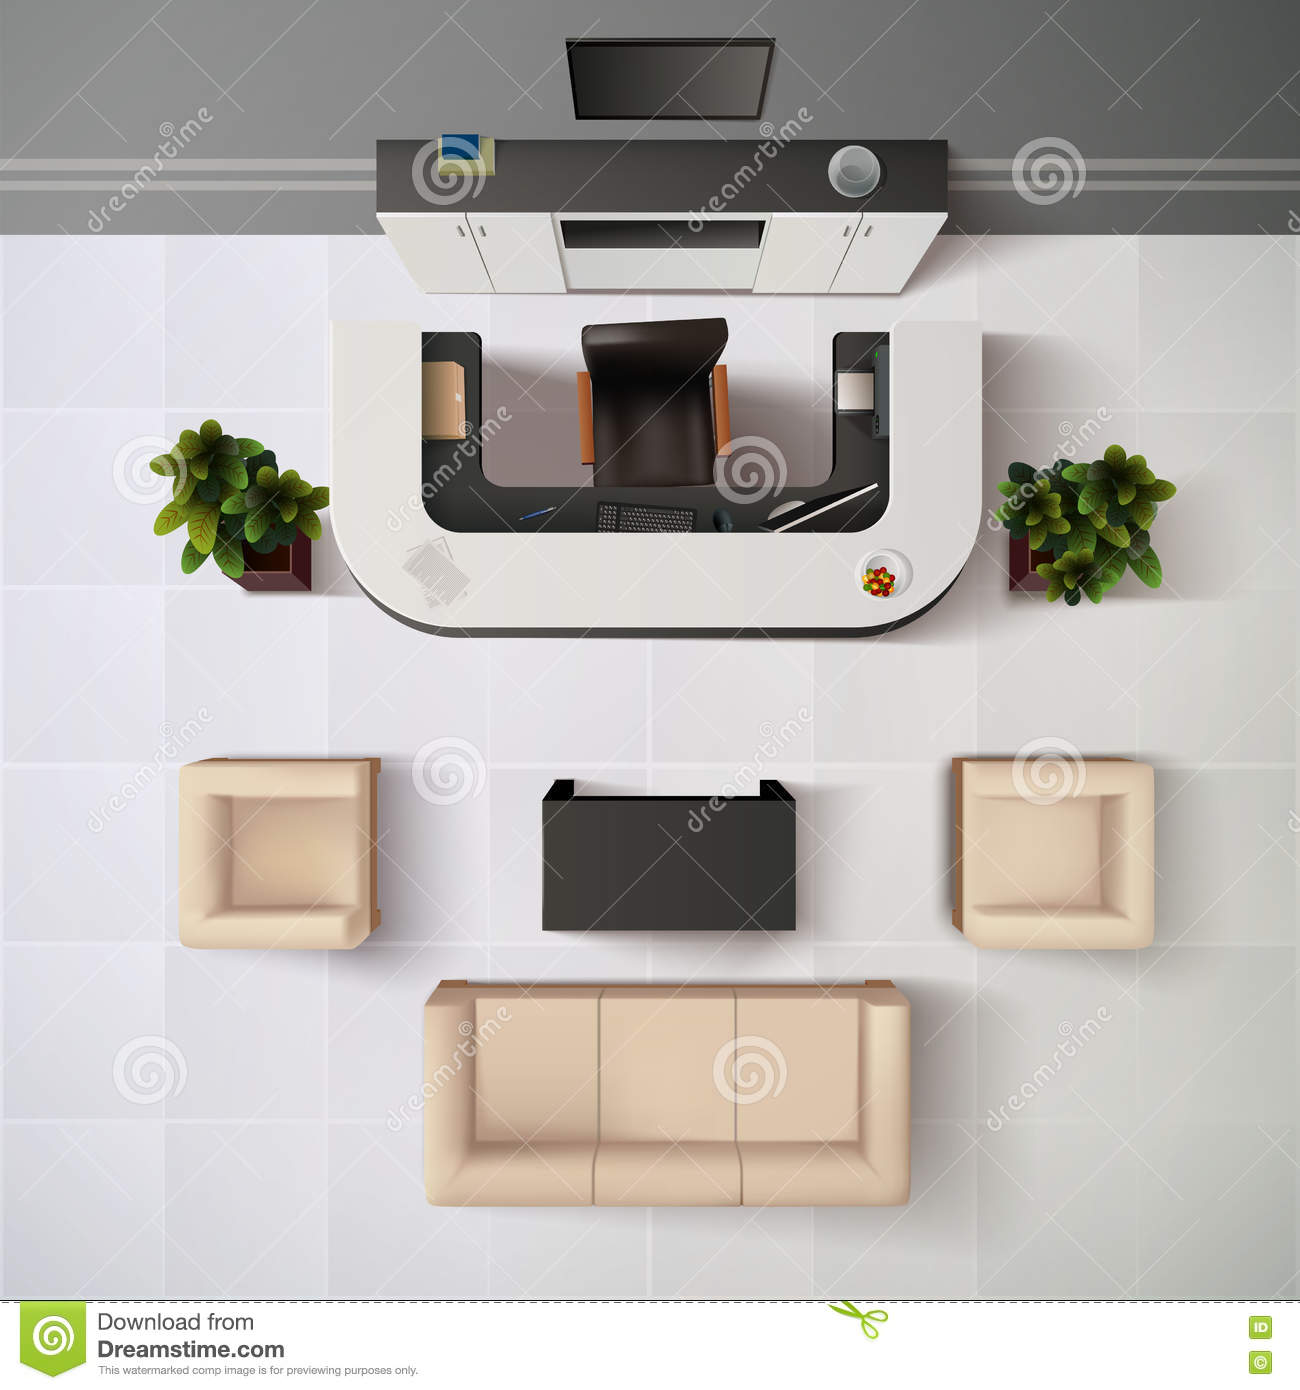 Reception Office Top View Illustration Stock Vector Image 73604618